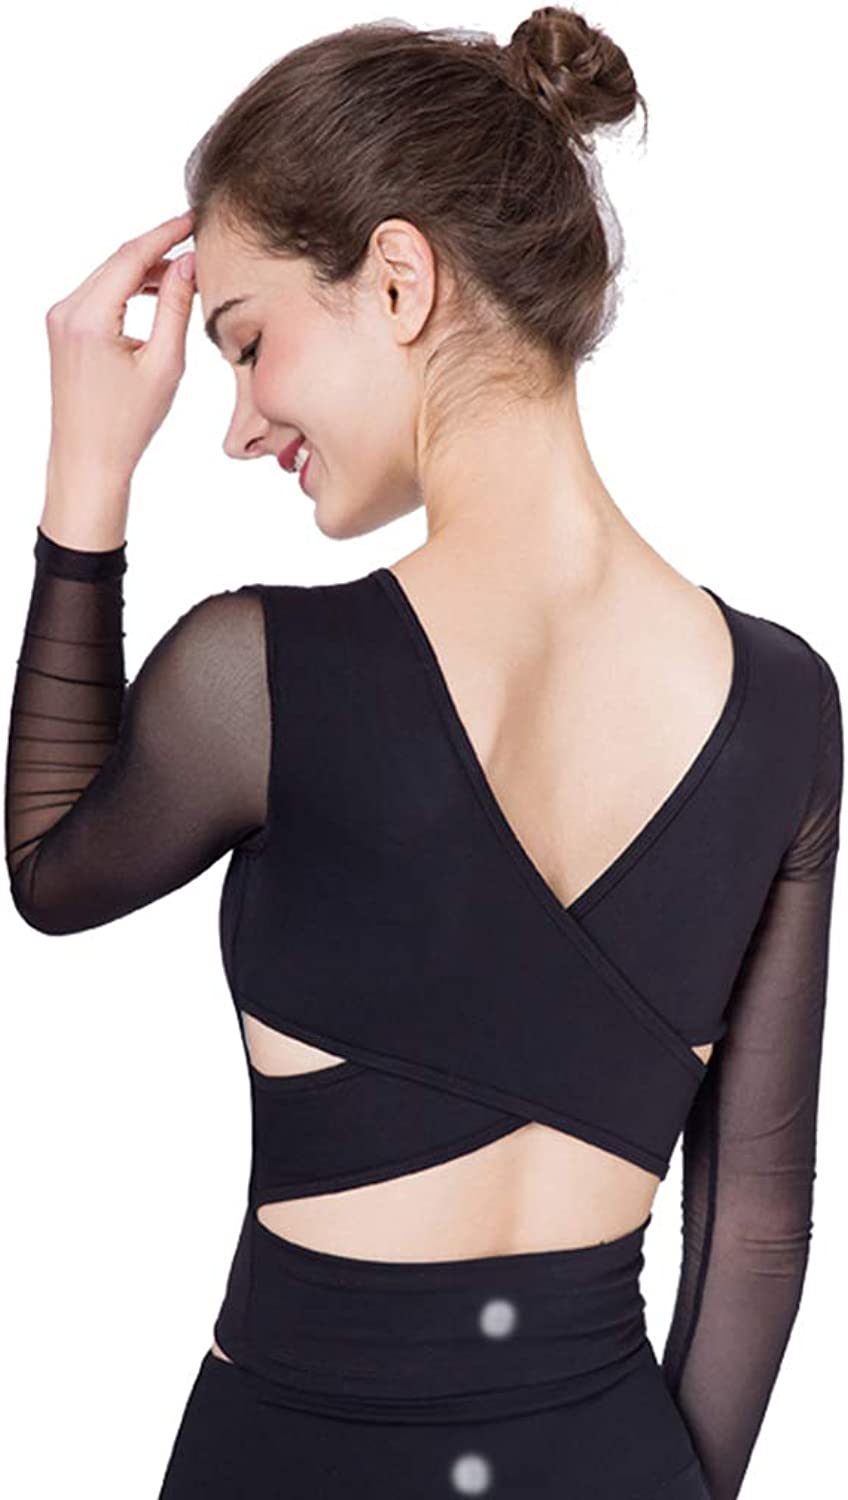 New Yoga Clothing Tops Women's Strap Long Sleeve Vests Workout Sports TShirt Builtin Bras (color   B, Size   L)